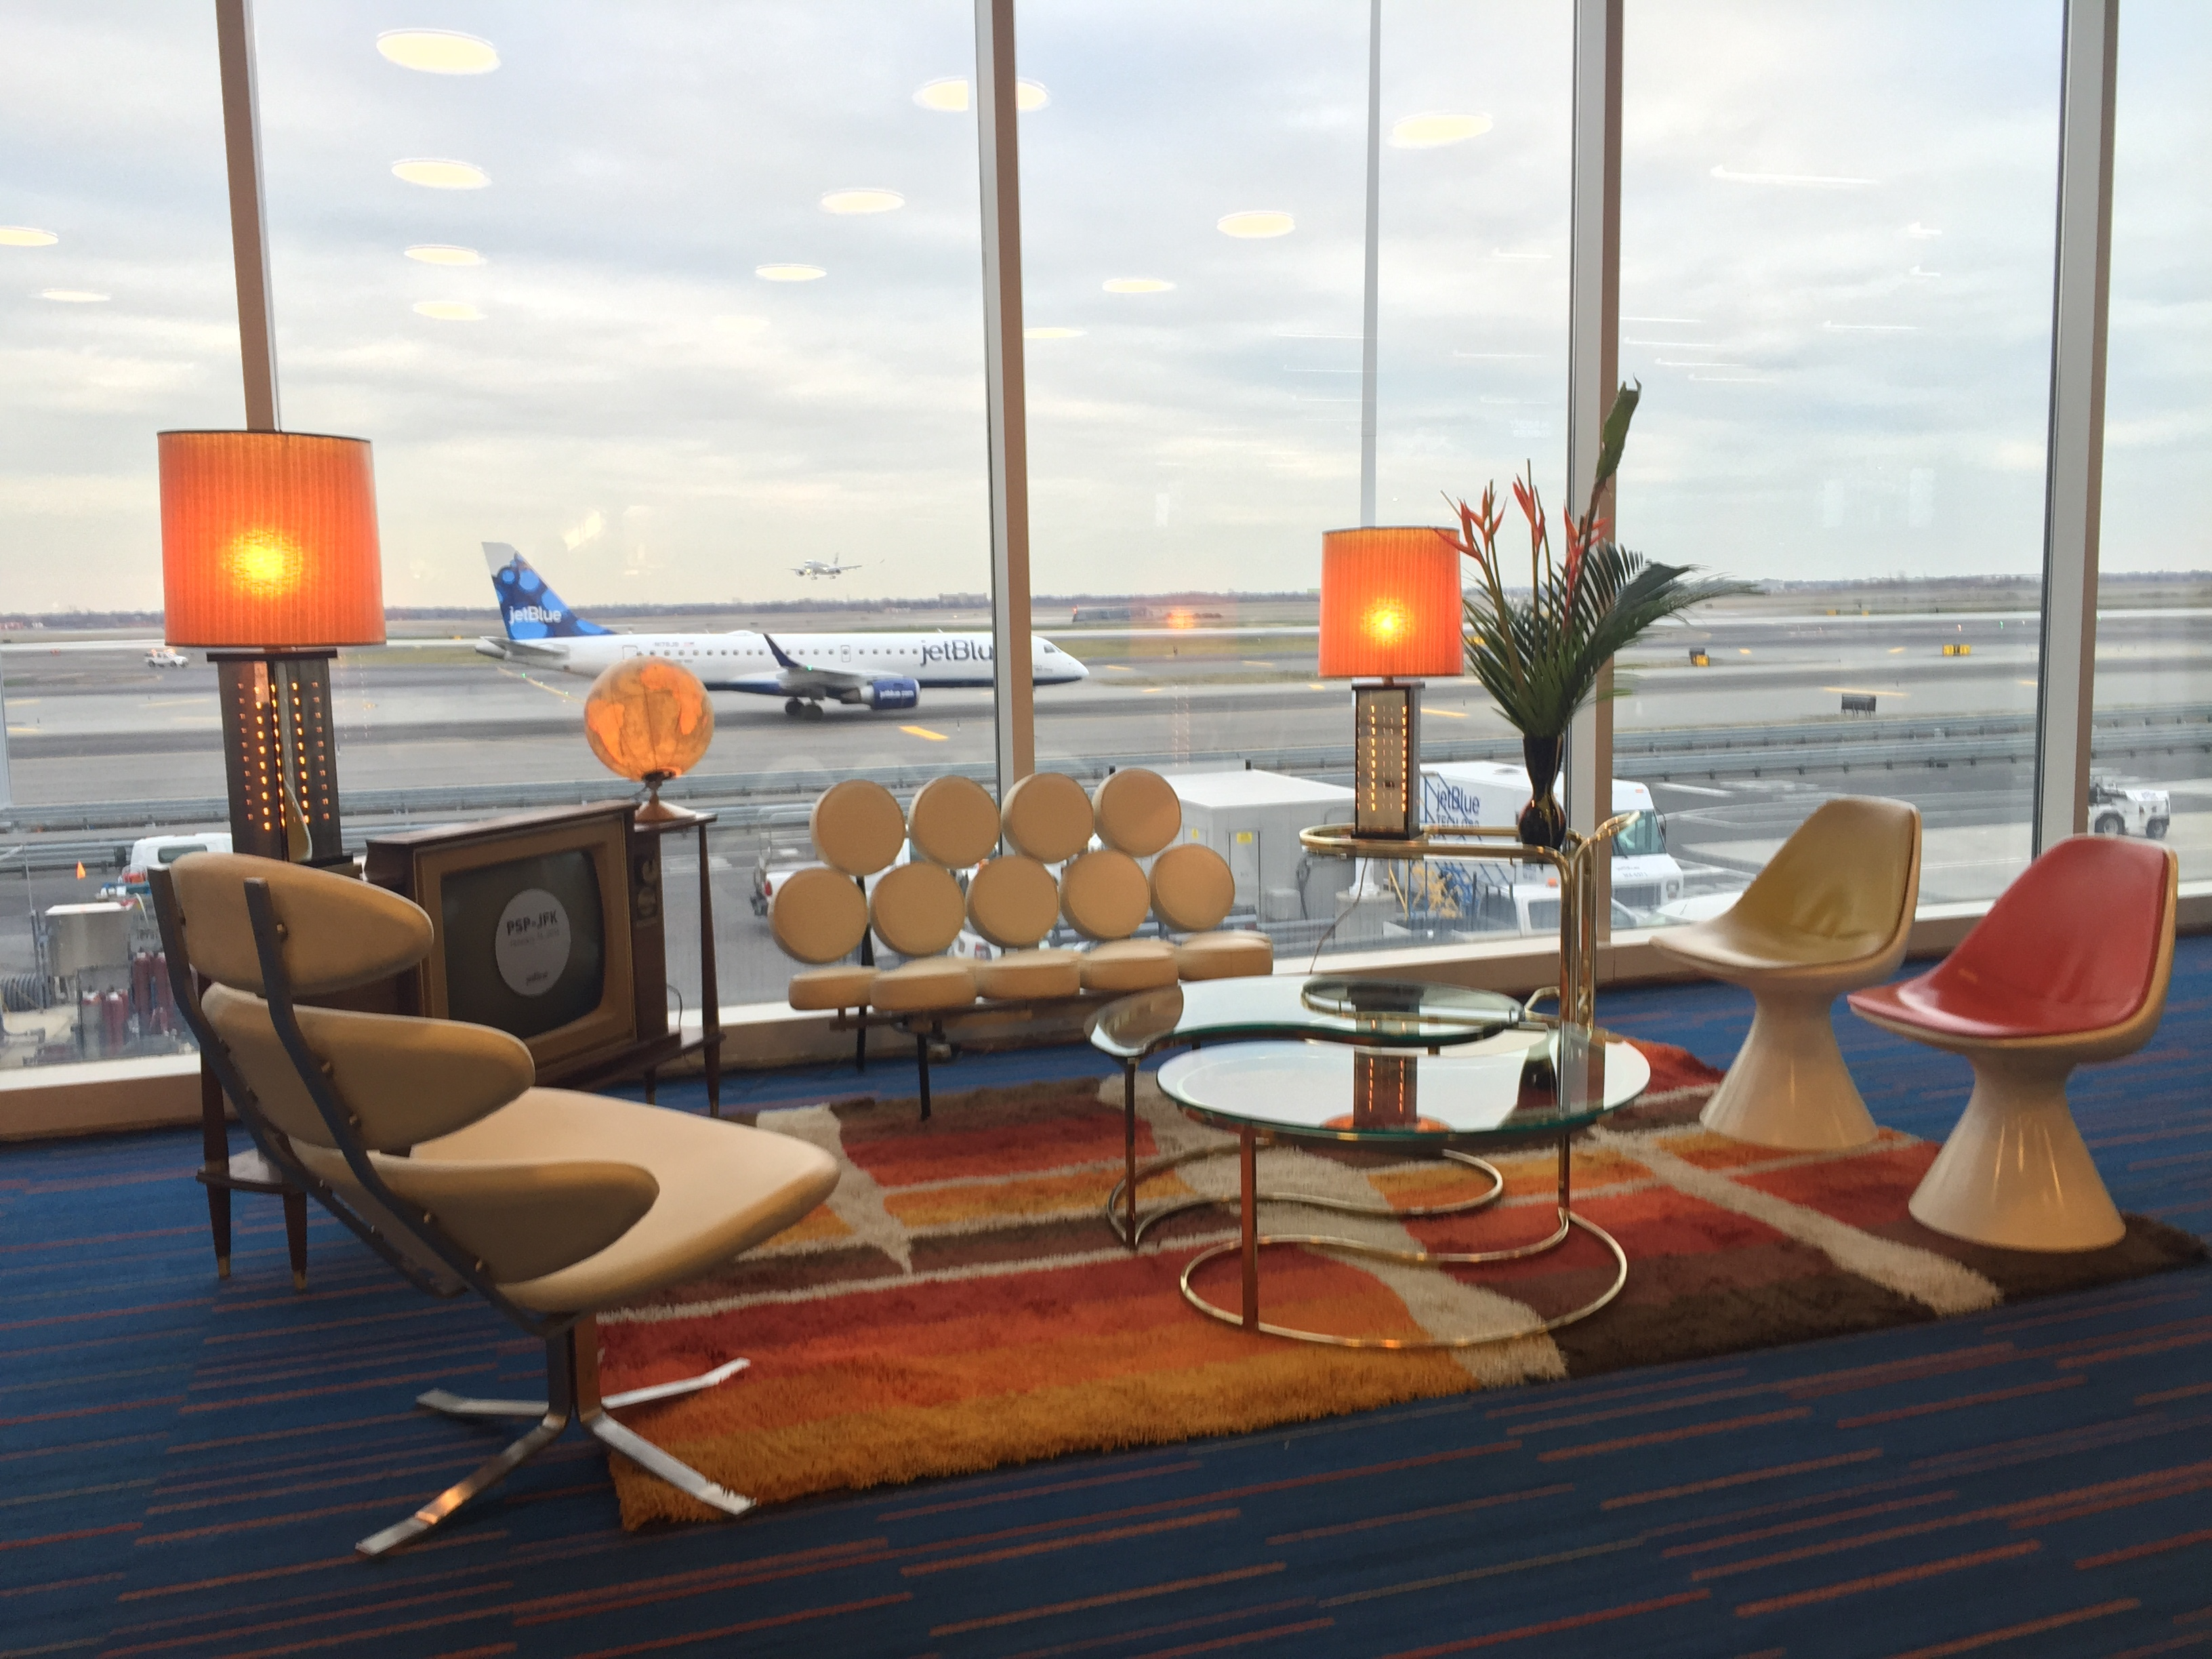 Gentil JetBlue Launches Palm Springs Service With Mid Century Modern Celebration |  Business Wire